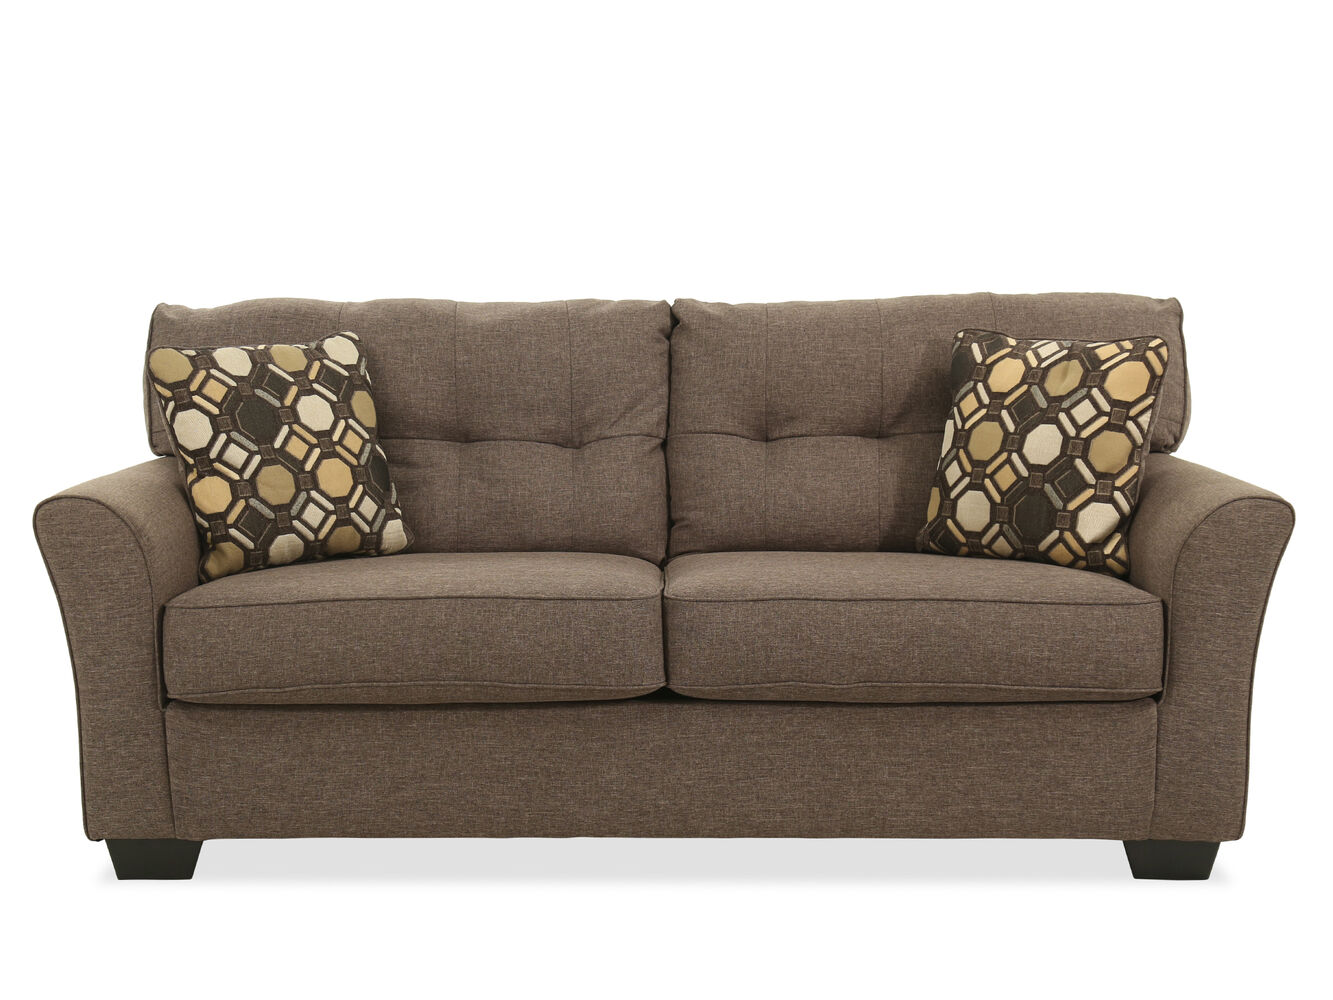 sofas u0026 couches mathis brothers furniture stores